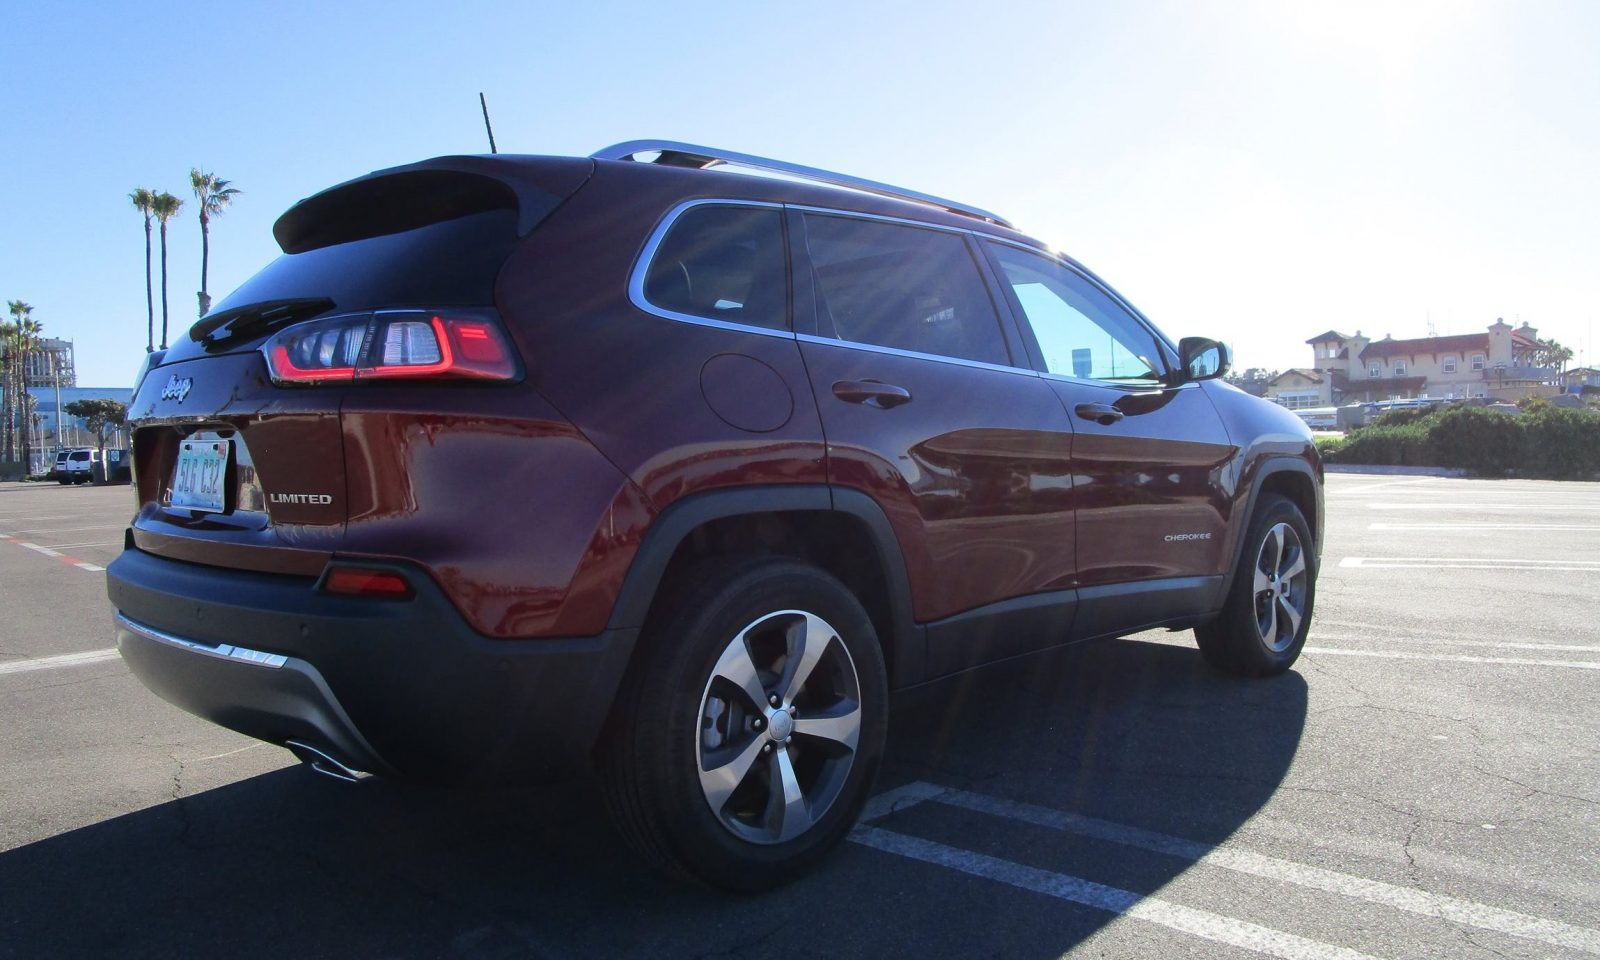 2019 Jeep Cherokee Limited 4x4 - Road Test Review - By Ben ...